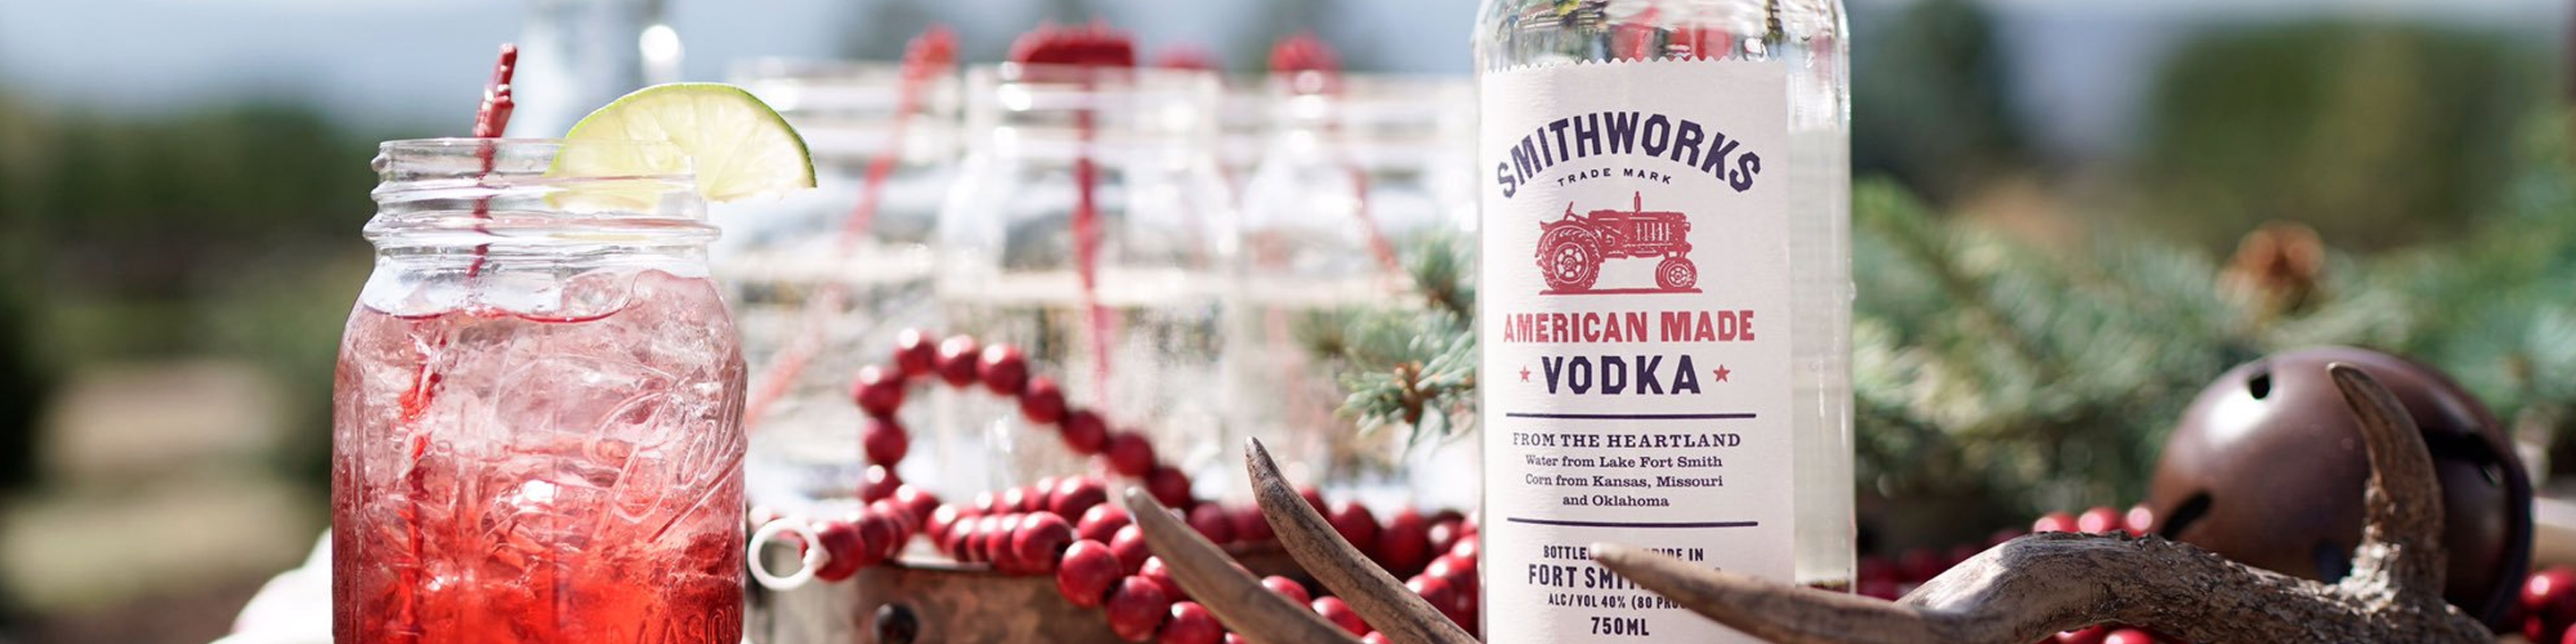 Barstool or backyard, friends or family, neat or otherwise, Smithworks American Made Vodka is the perfect anchor for your good time. It's made with water from Lake Fort Smith, and with corn from Kansas, Missouri, and Oklahoma. Then it's distilled three times and charcoal filtered for a smooth taste and clean finish. Buy Smithworks online now from your nearby liquor store via Minibar Delivery.